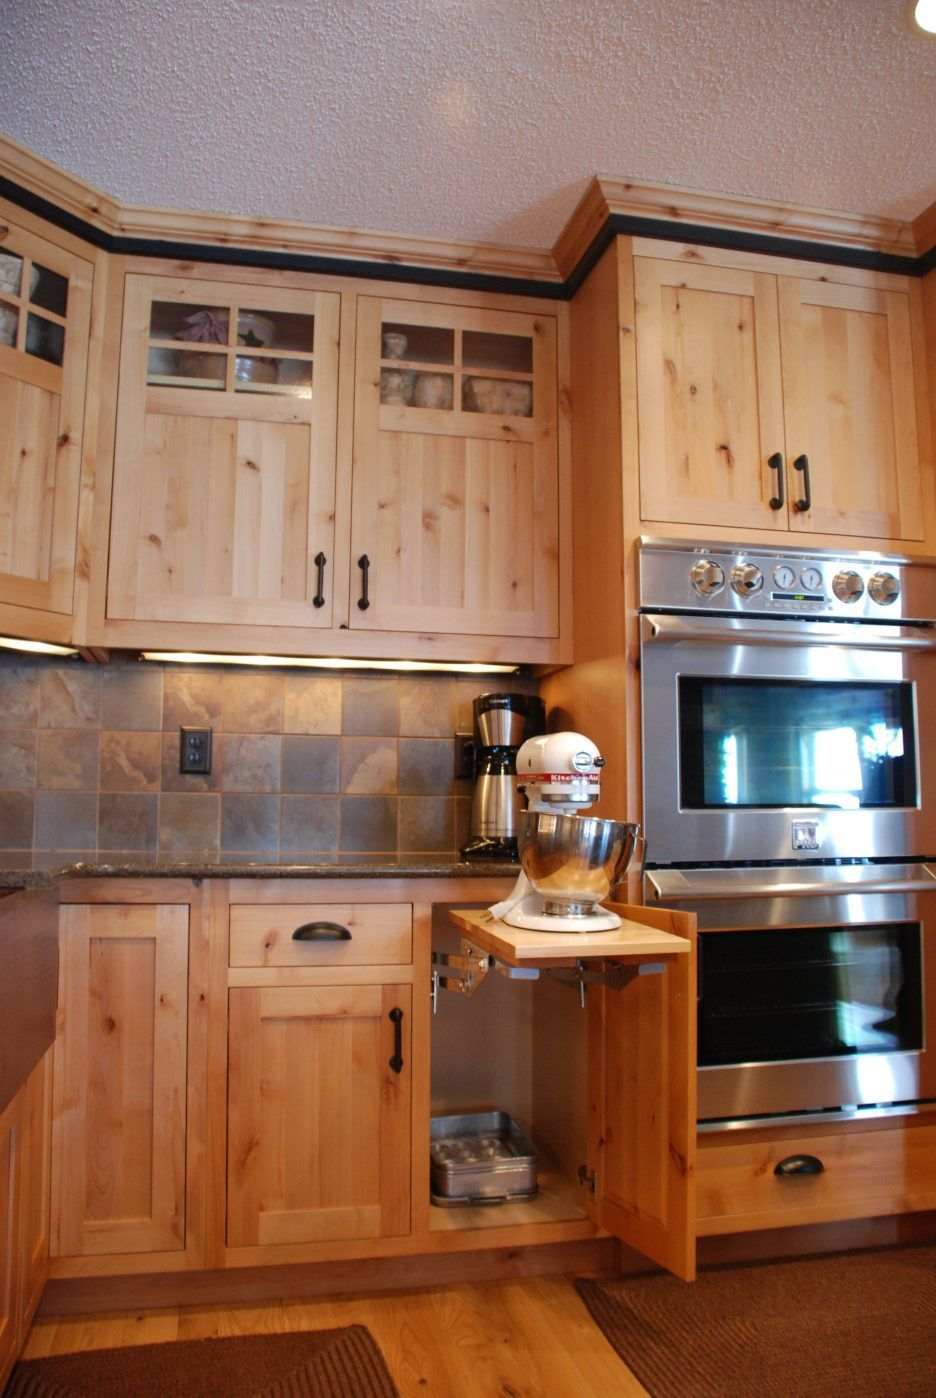 kitchen cabinet rta cabinets reviews legacy cabinets natural wood finish kitch farmhouse on kitchen cabinets natural wood id=59293